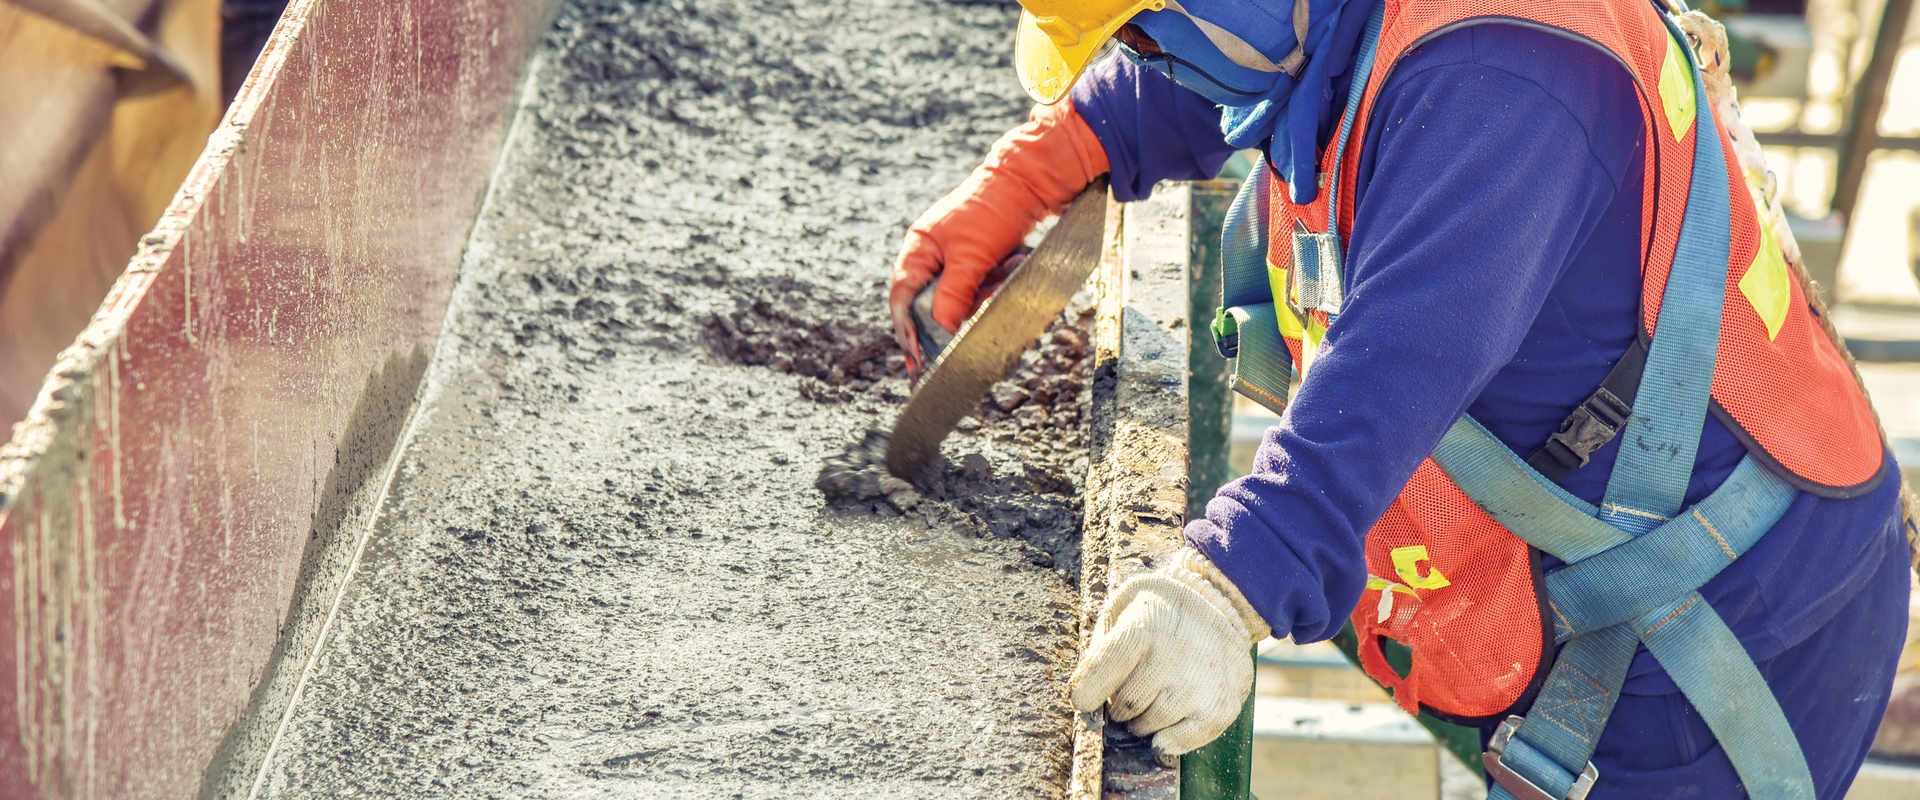 Foundation Repair – Reasons You Should Get it Done Now